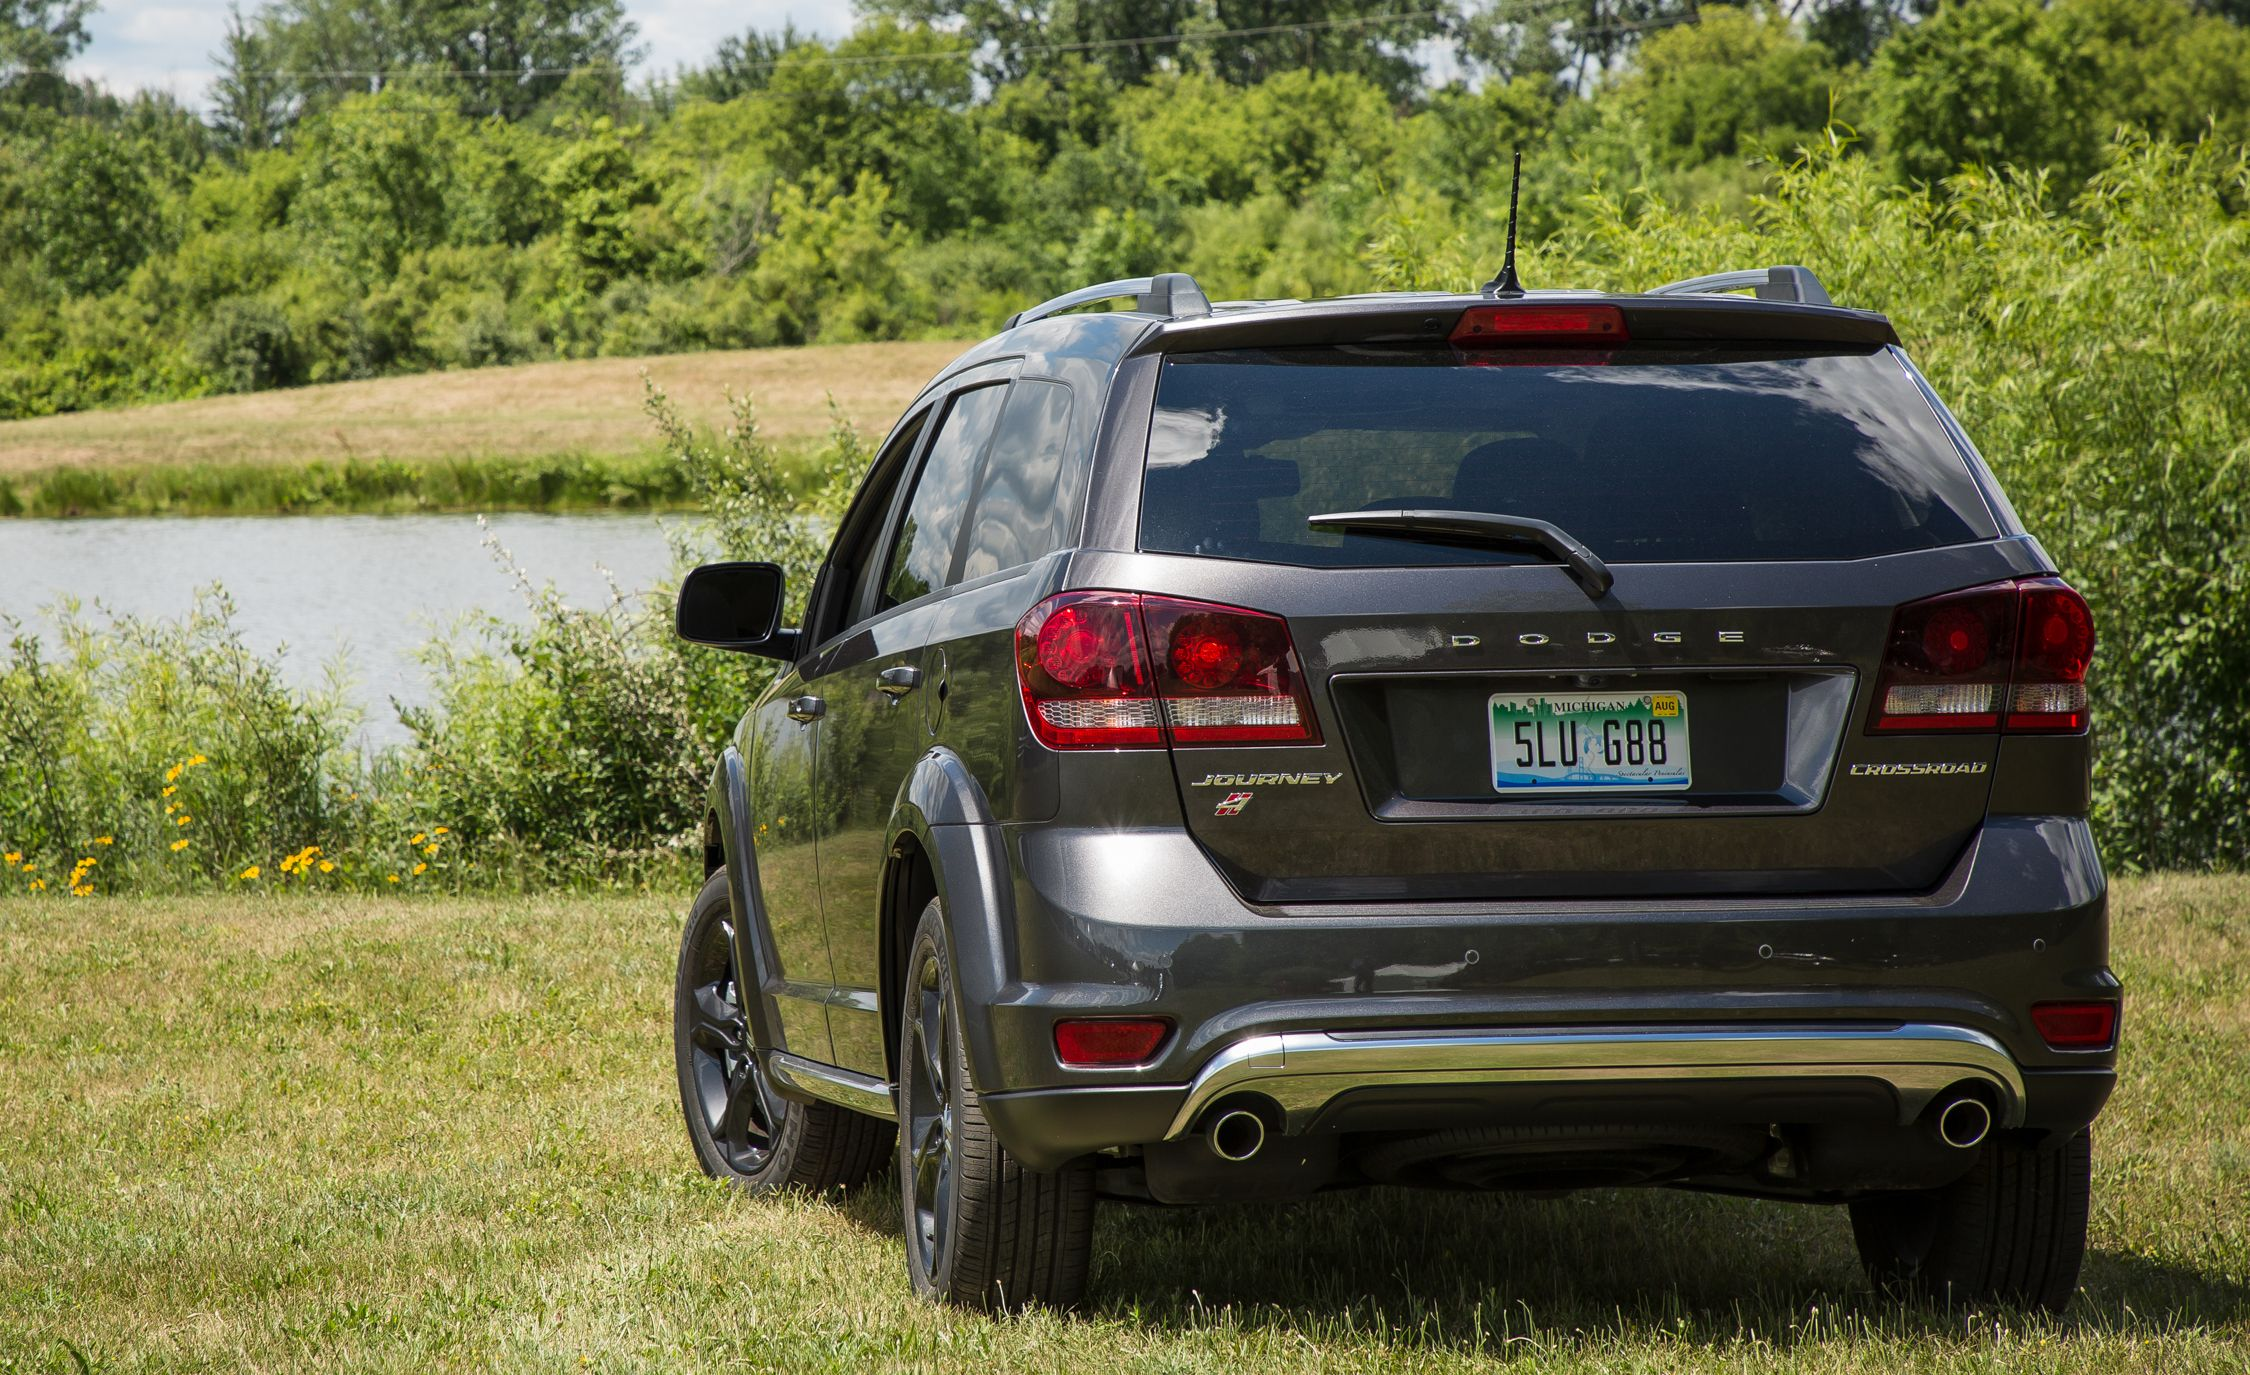 Recall of 862,000 Dodge, Jeep, and Chrysler Models over